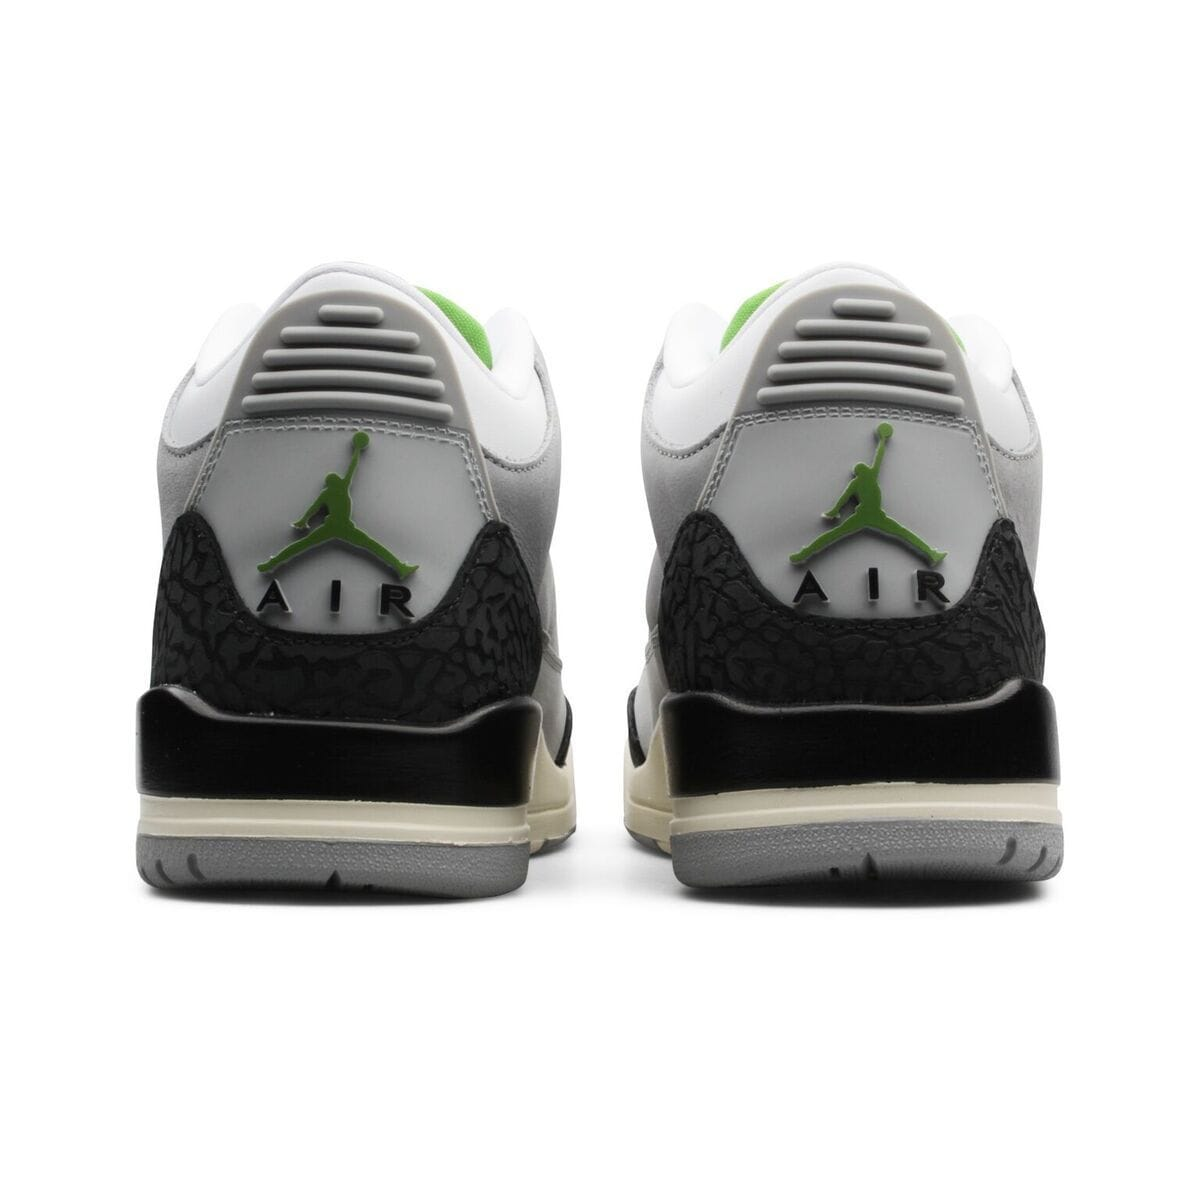 53e13d054444ee Jordan Brand AIR JORDAN 3 RETRO (Light Smoke Grey Chlorophyll-Black-White